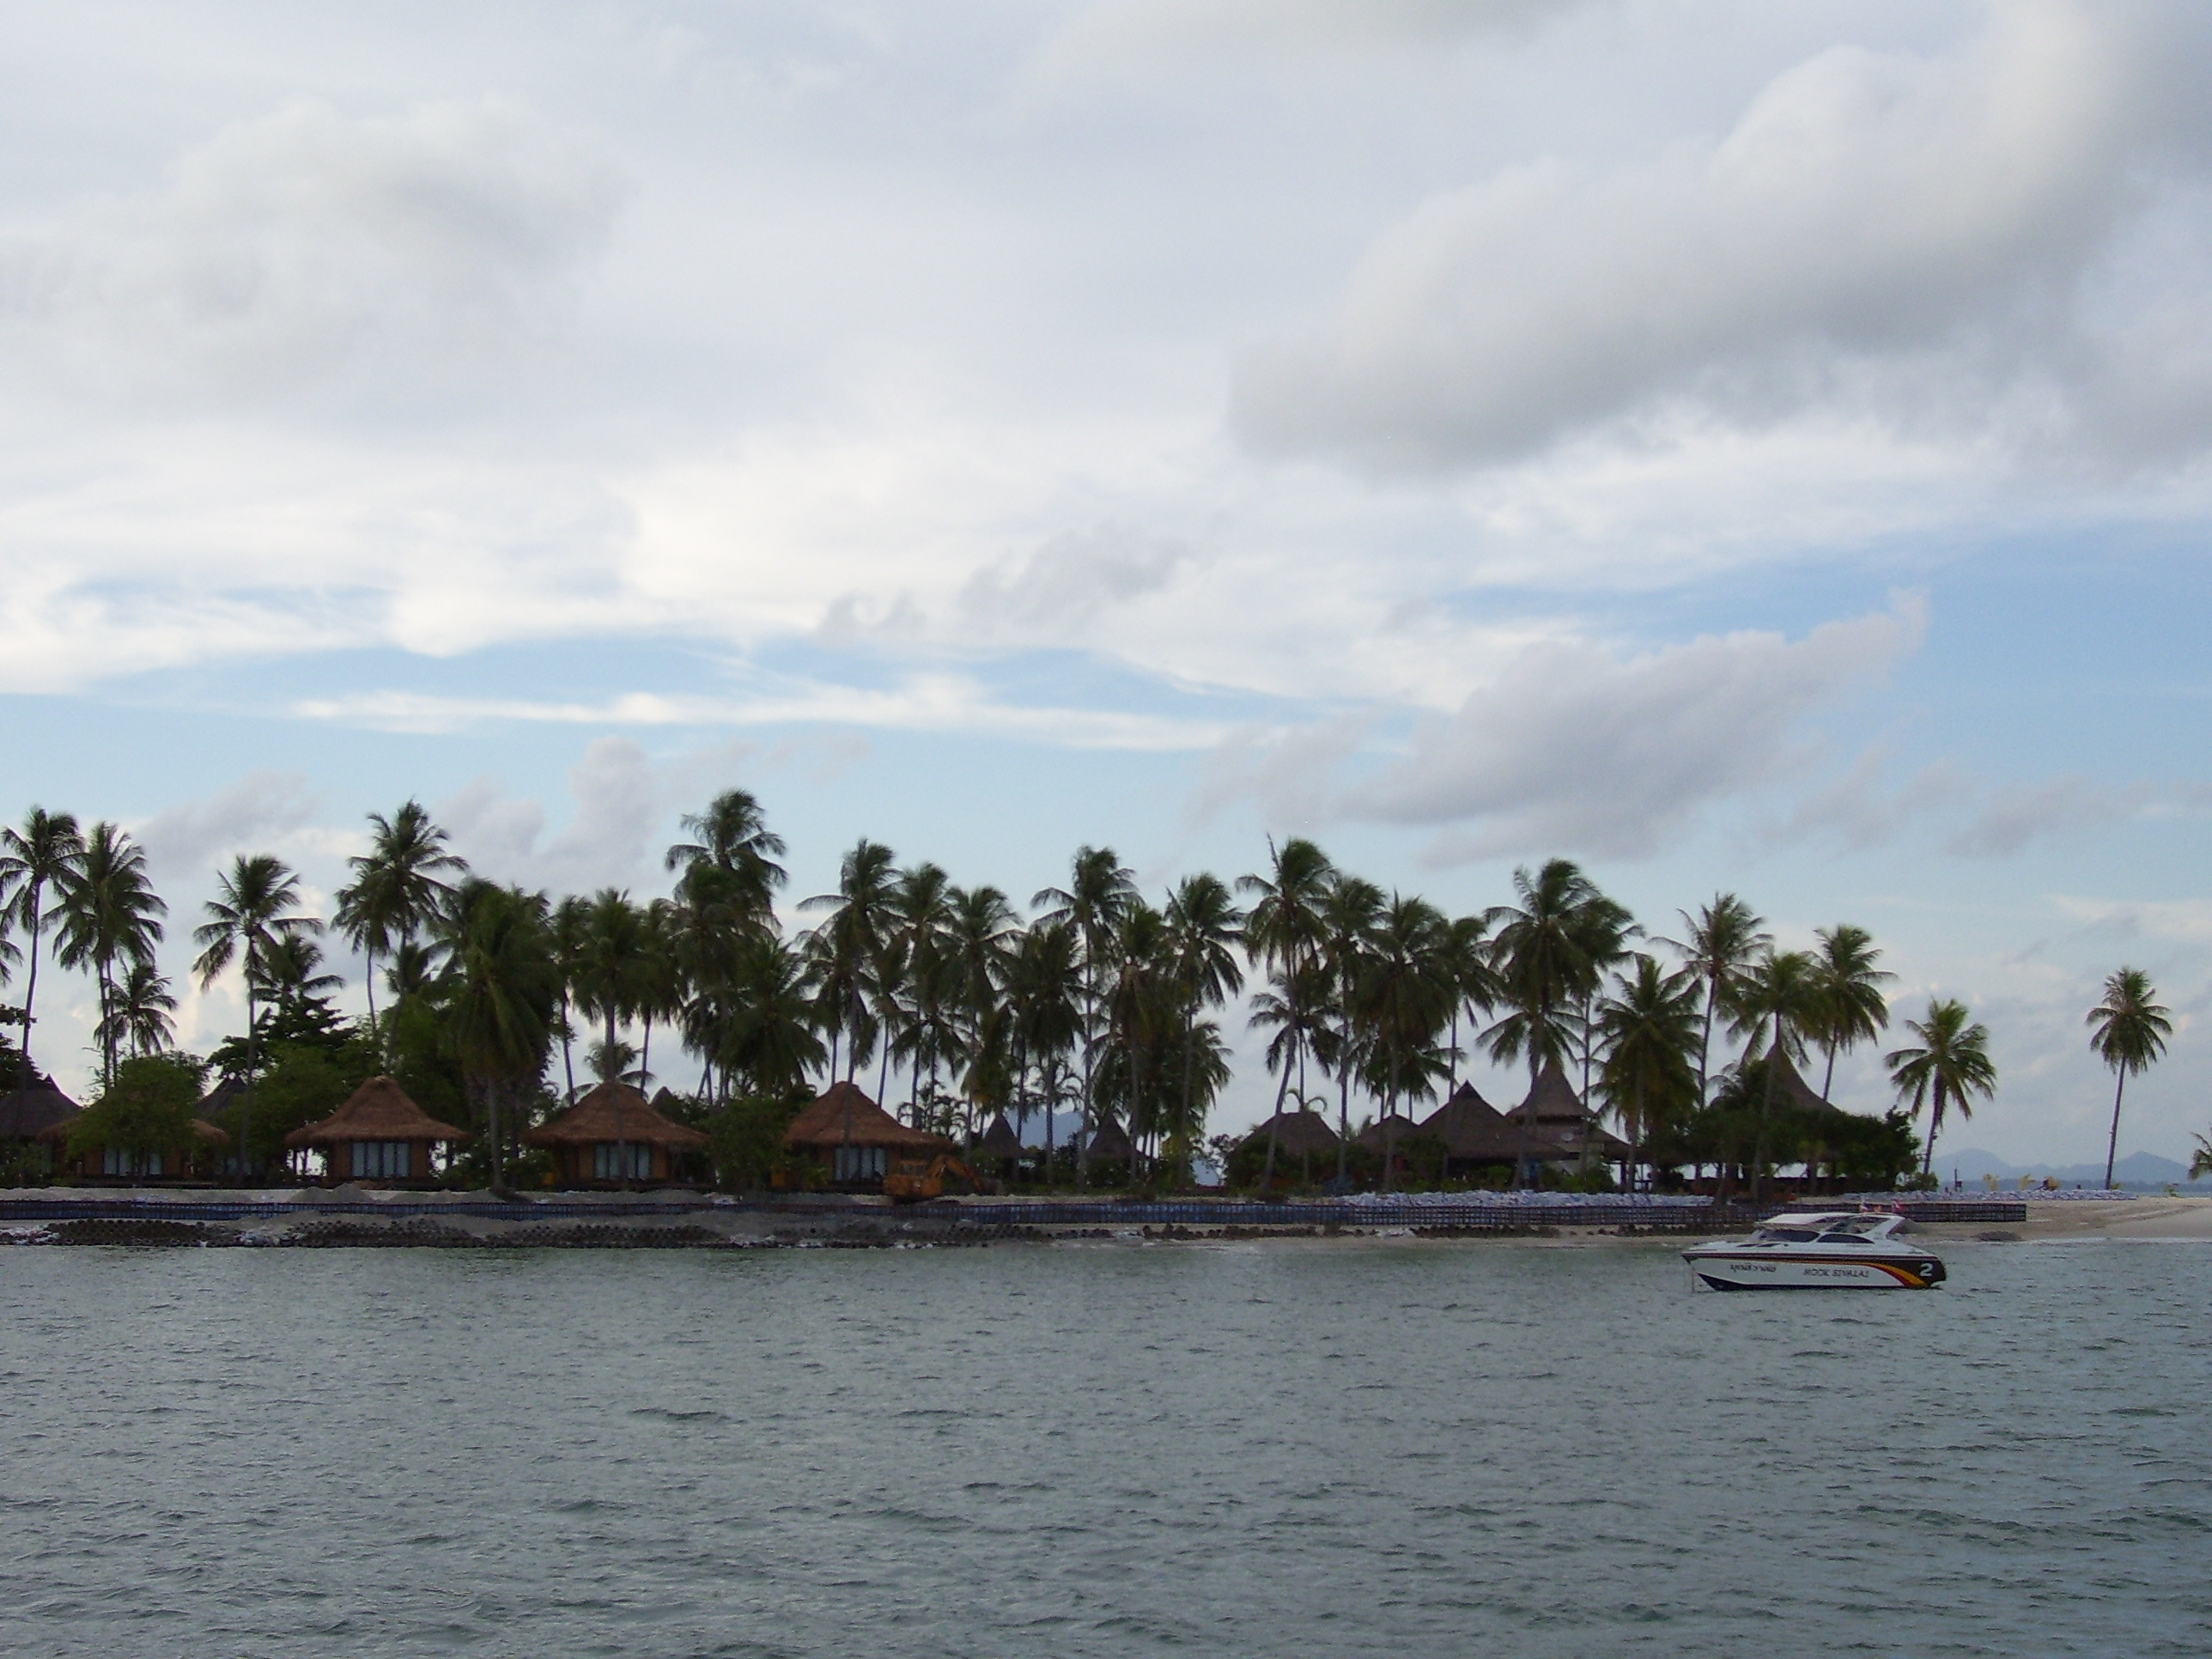 We were anchored off the Sivalai Resort, Ko Muk